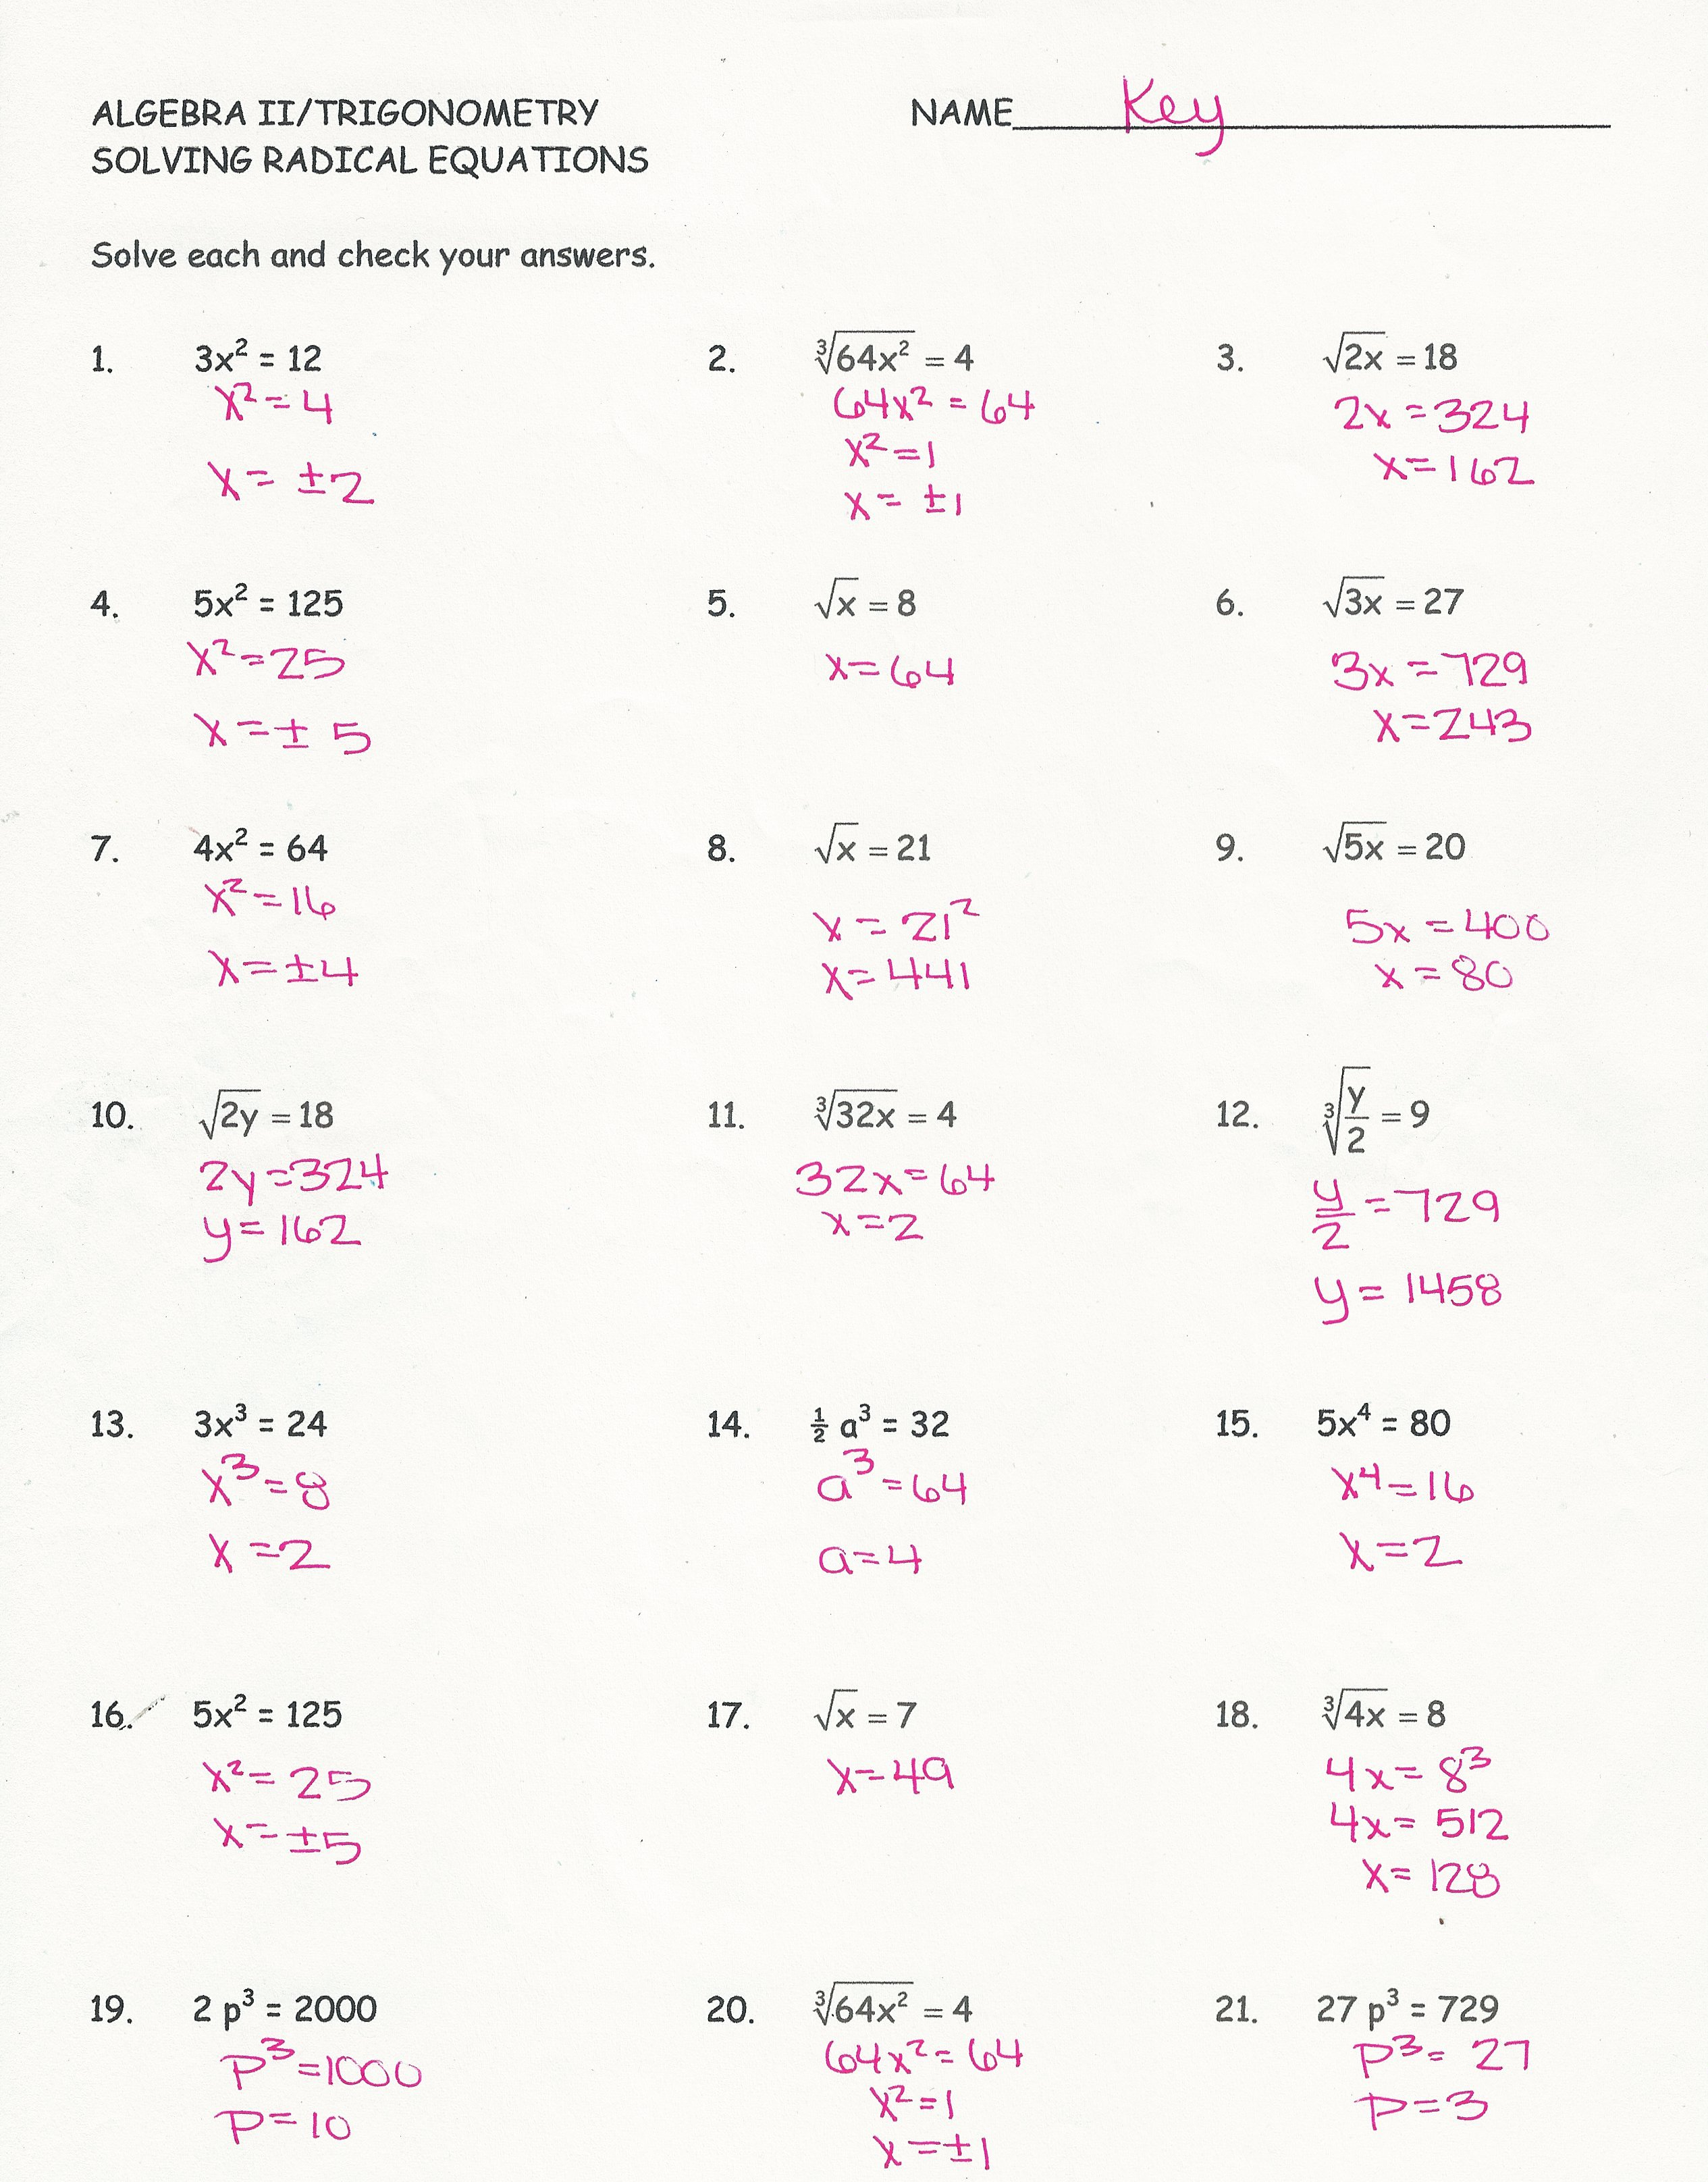 Solving Radical Equations Worksheet Best Of solving Radical Equations Worksheet with Answers